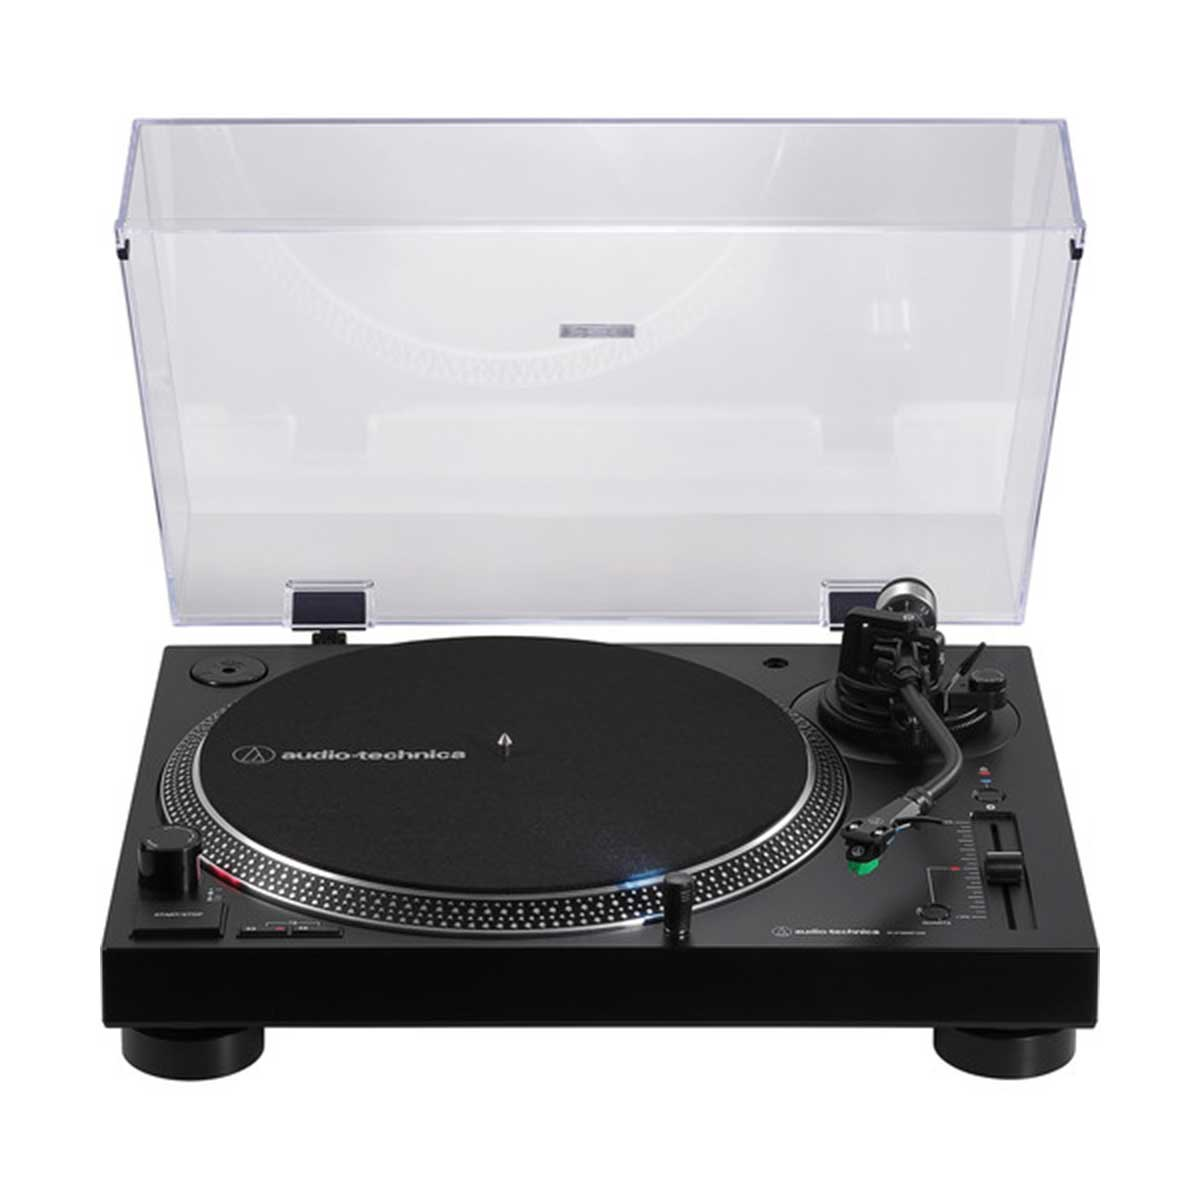 Audio-Technica LP-120xBT-USB Fully Manual Bluetooth Turntable with Bluetooth